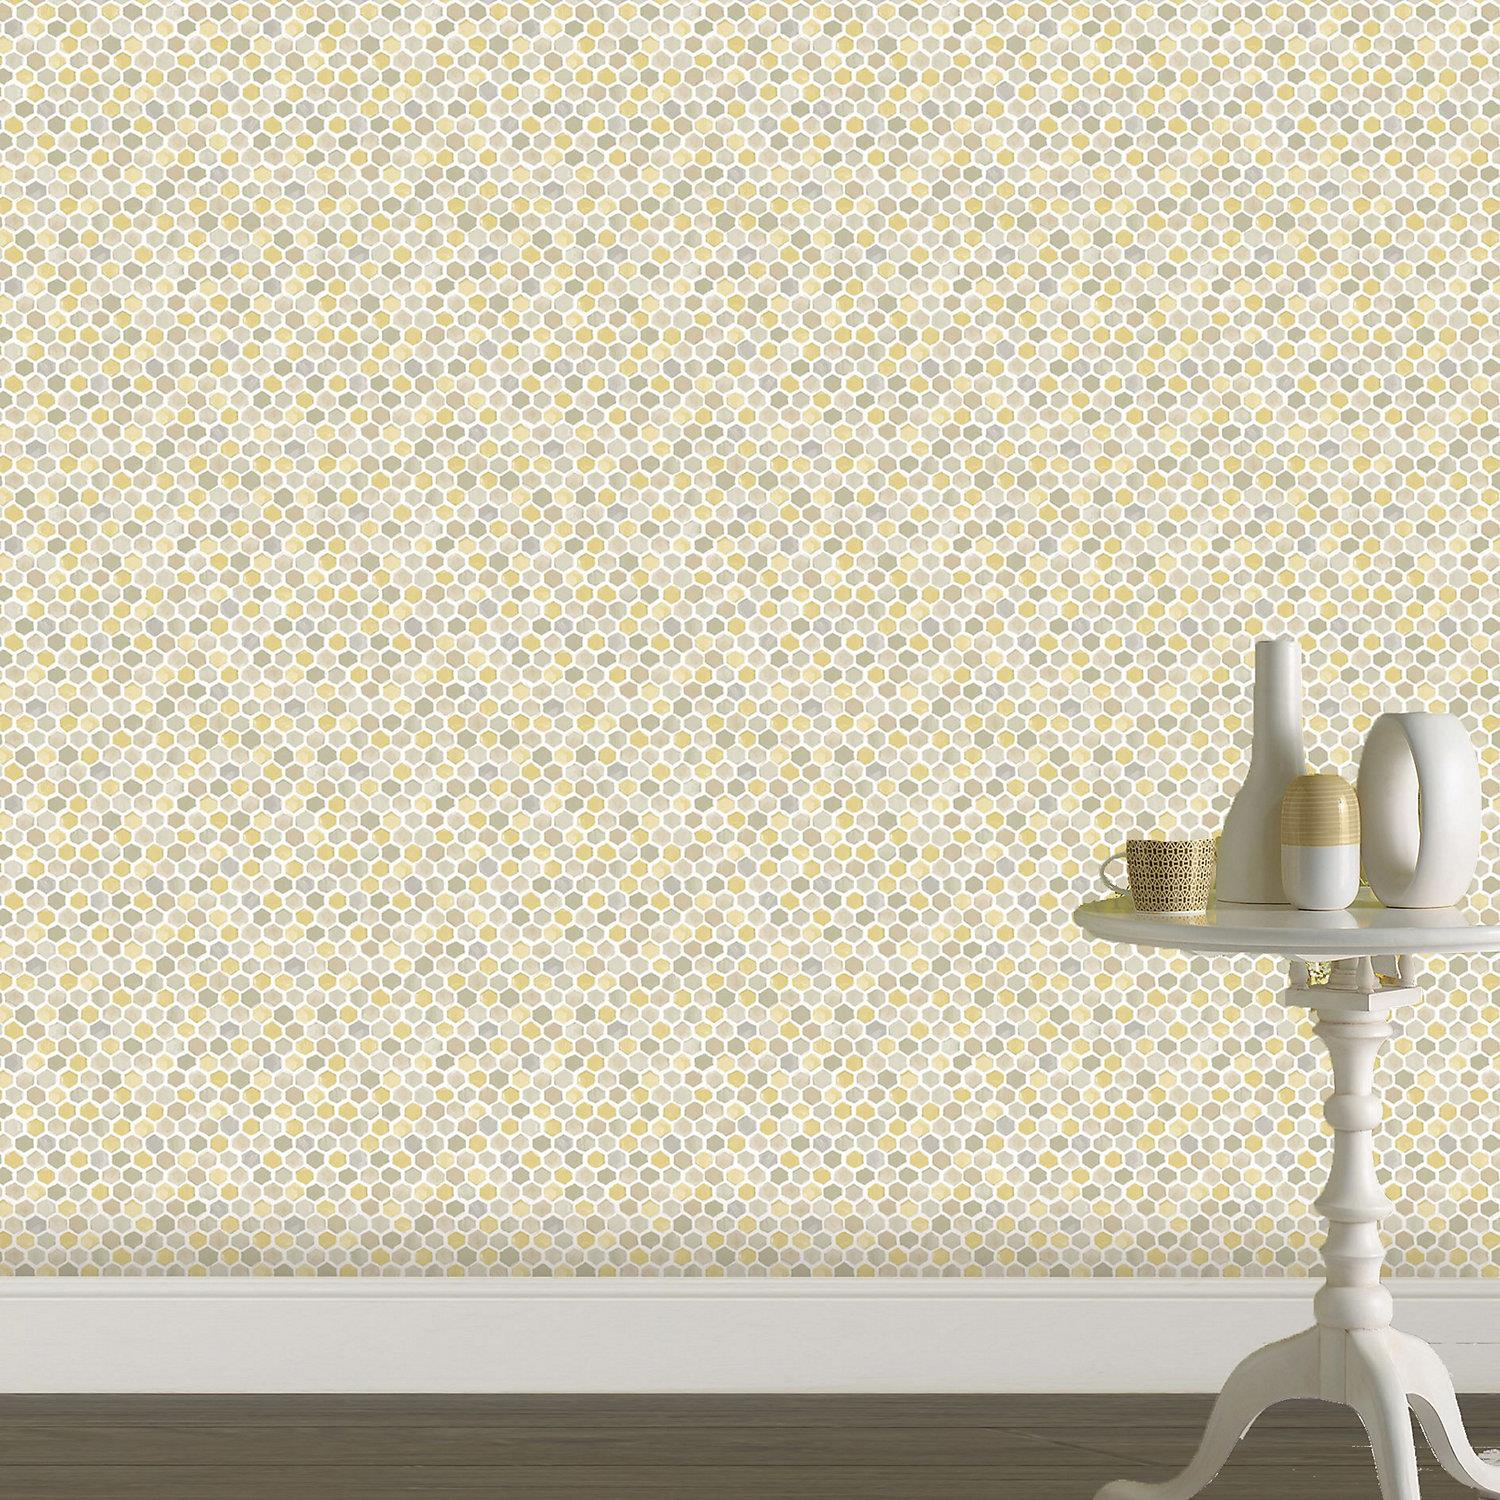 Yellow 3D Geometric Honeycomb Hexagon Wallpaper Modern Grey Beige White Holden